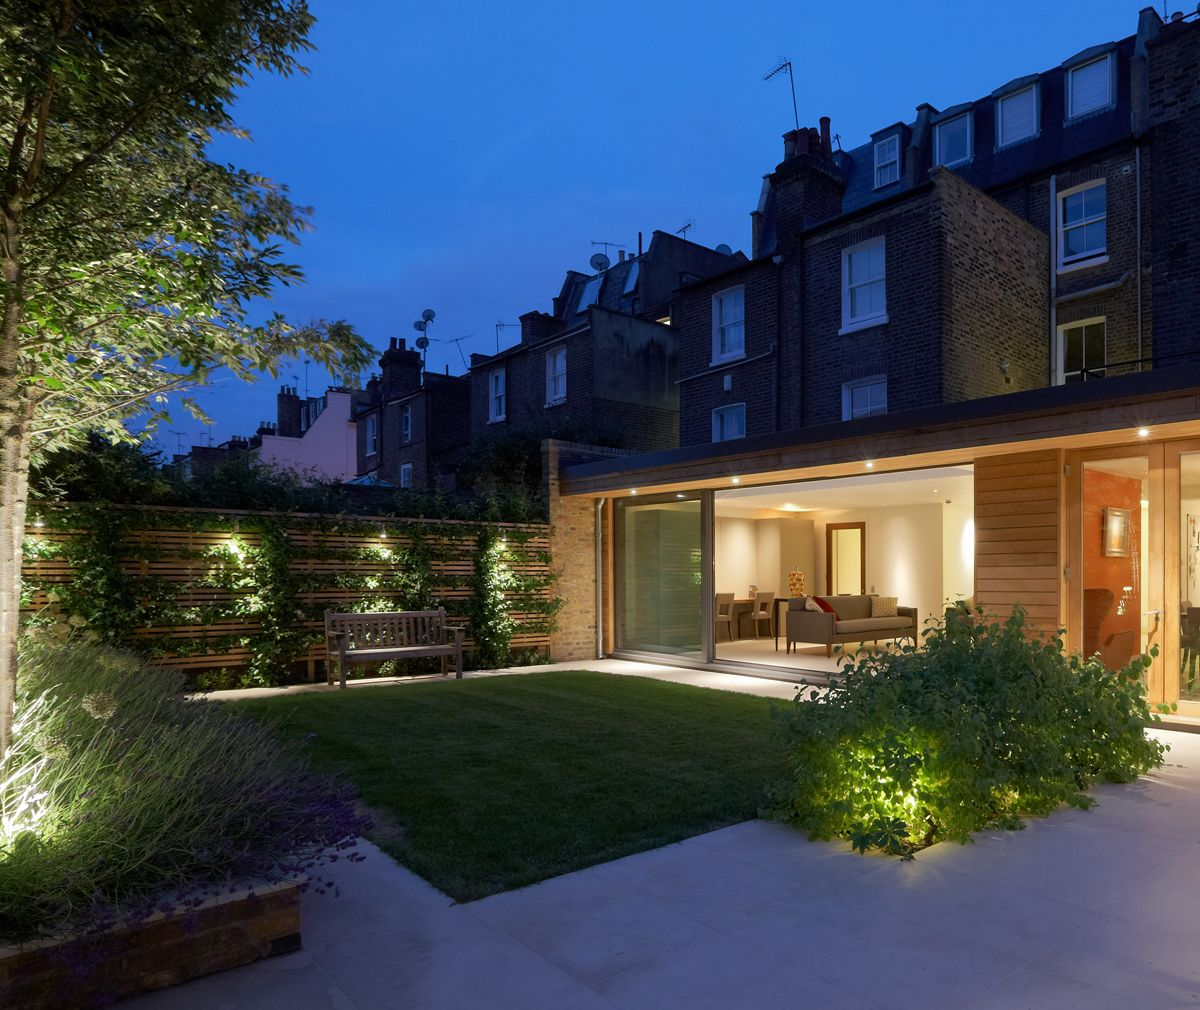 Exterior Lightingdesign Ideas: London Garden Lighting Design By John Cullen Lighting